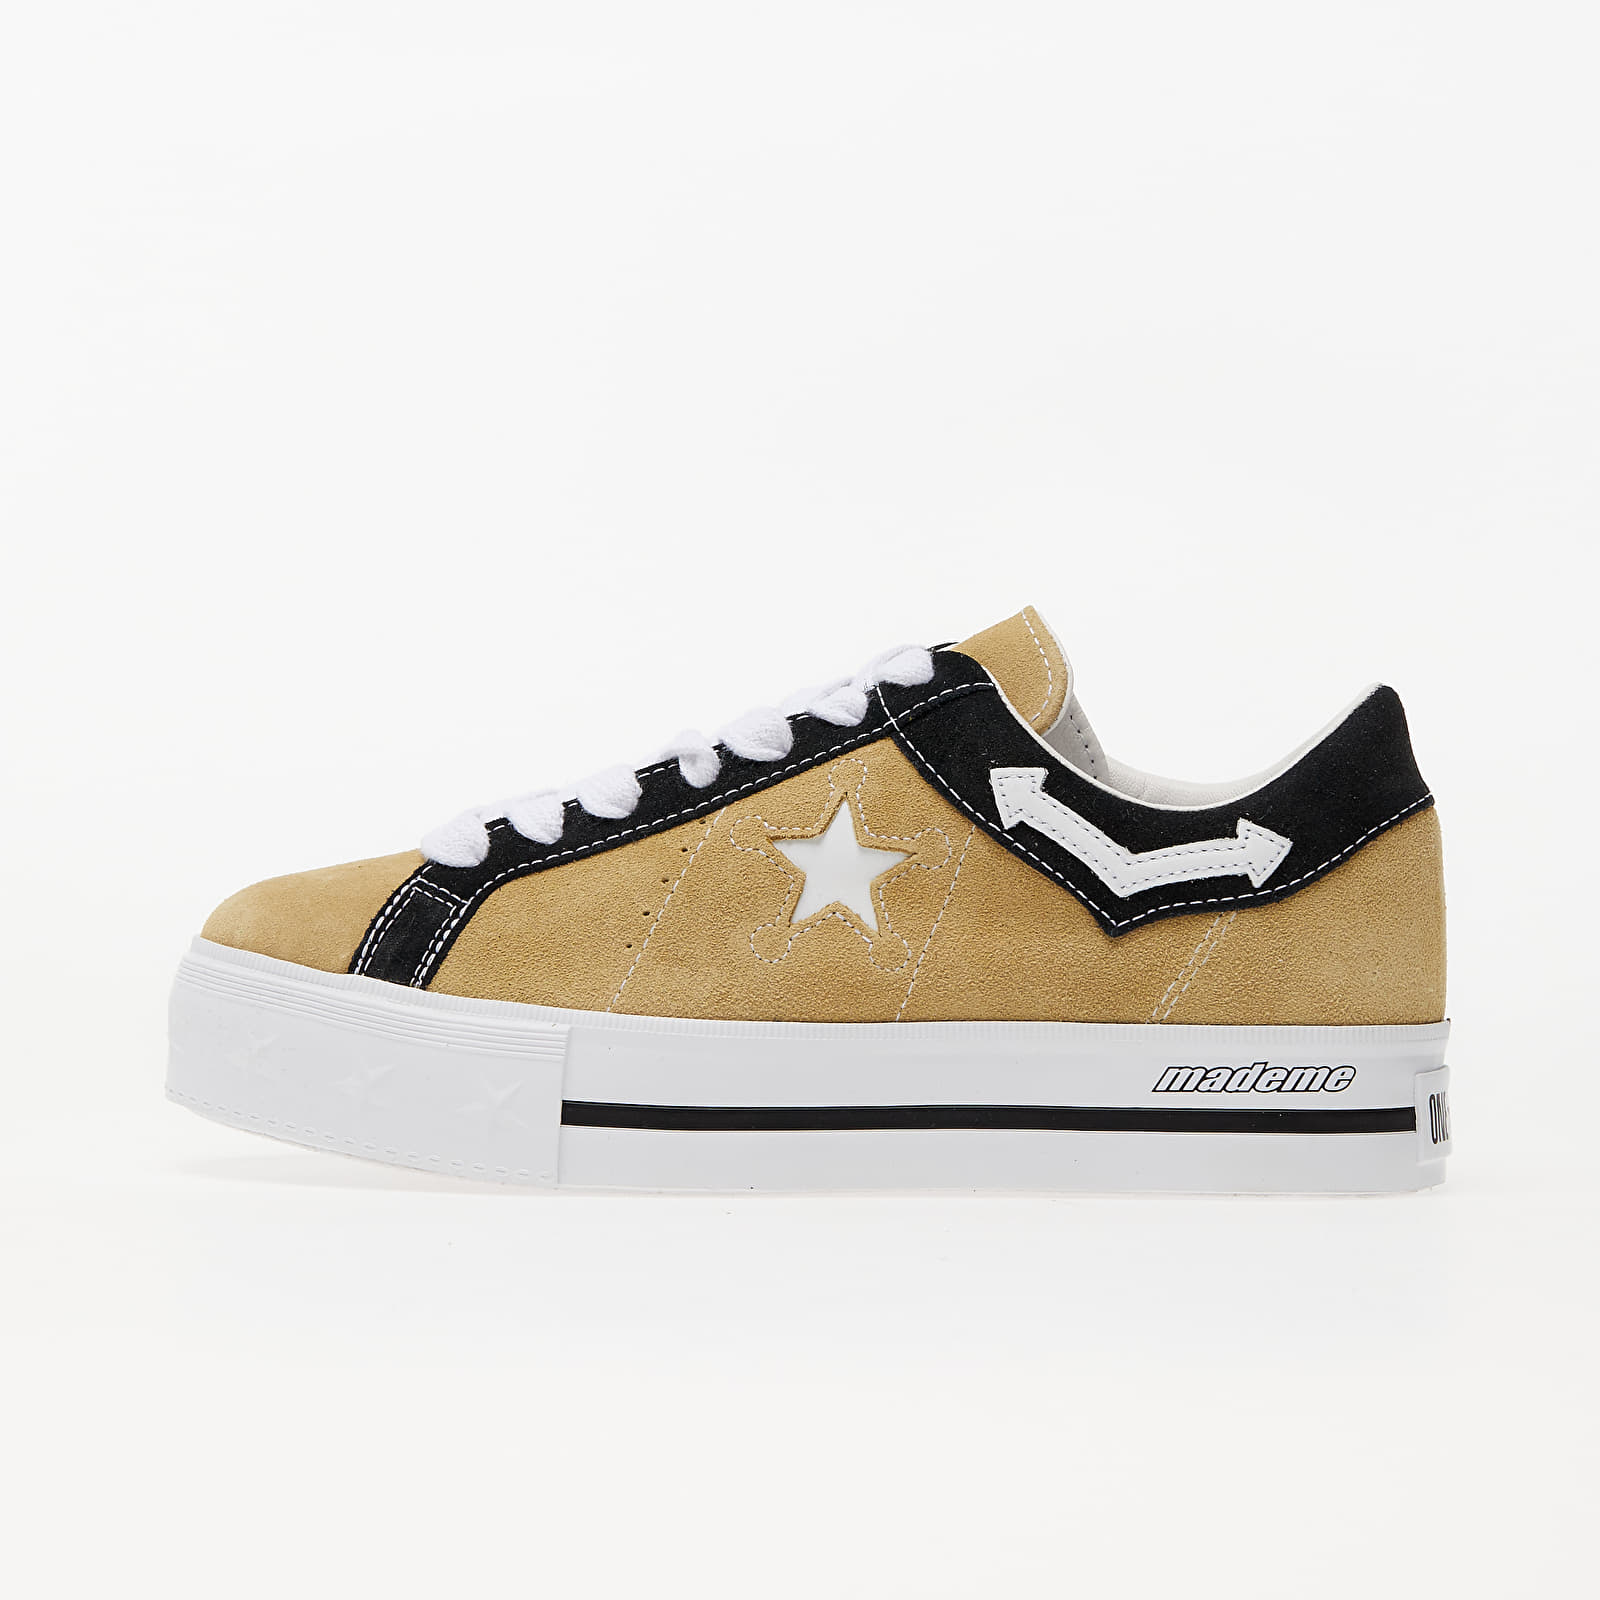 Women's shoes Converse One Star Platforn OX Brown/ White